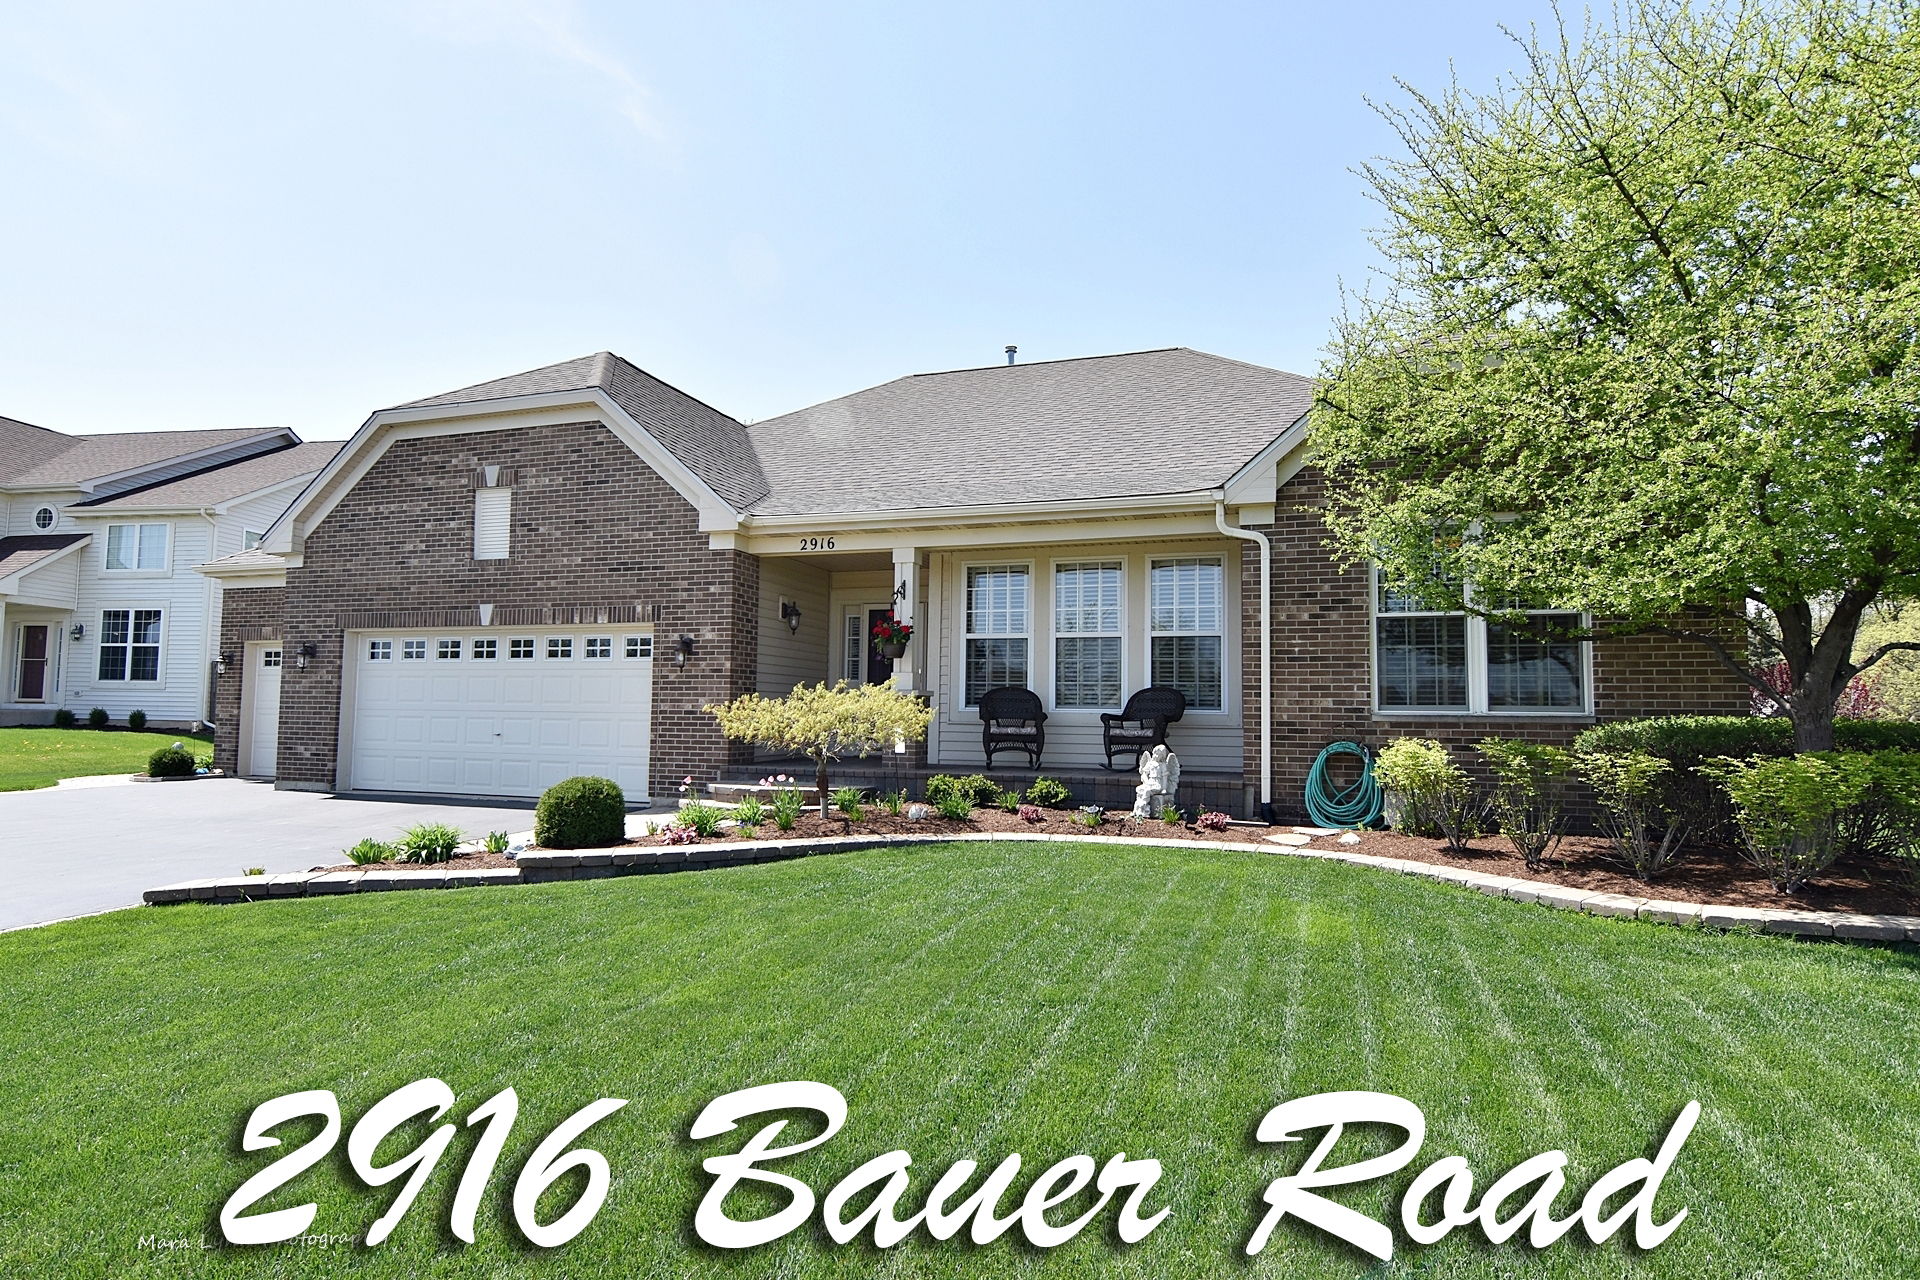 2916 Bauer Road is for sale